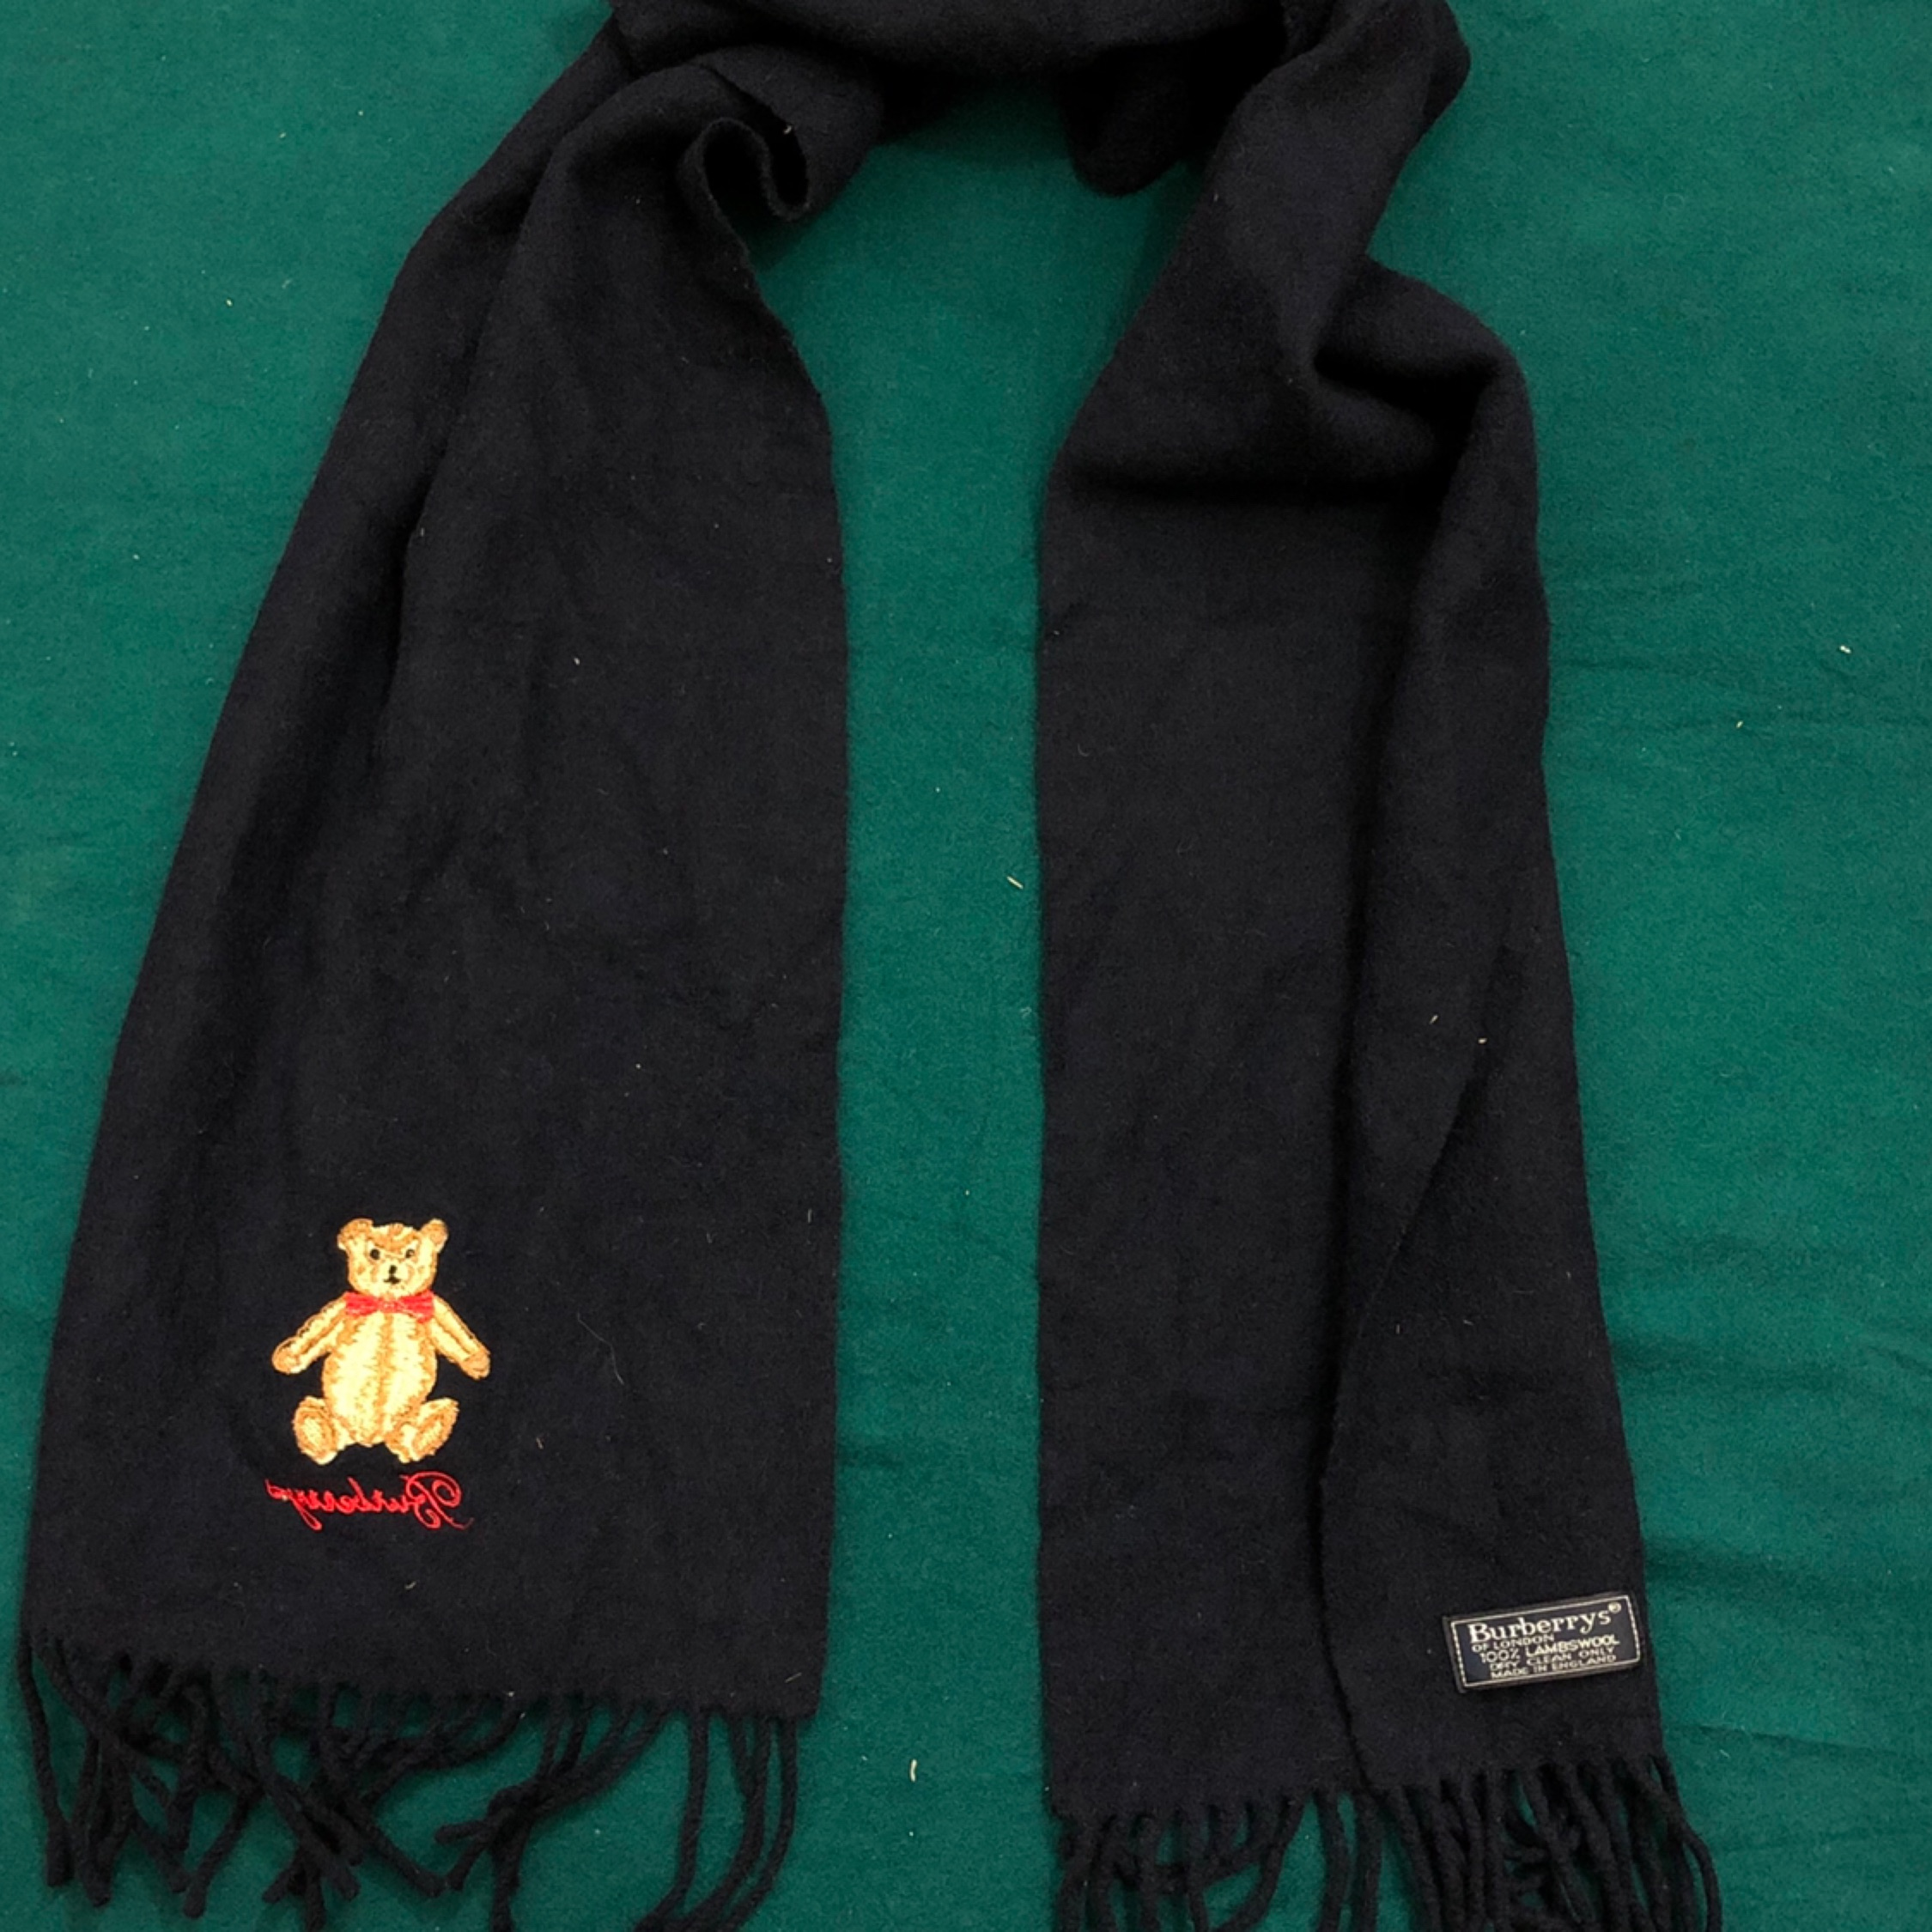 Vintage Burberrys 100% Lambswool Made In England